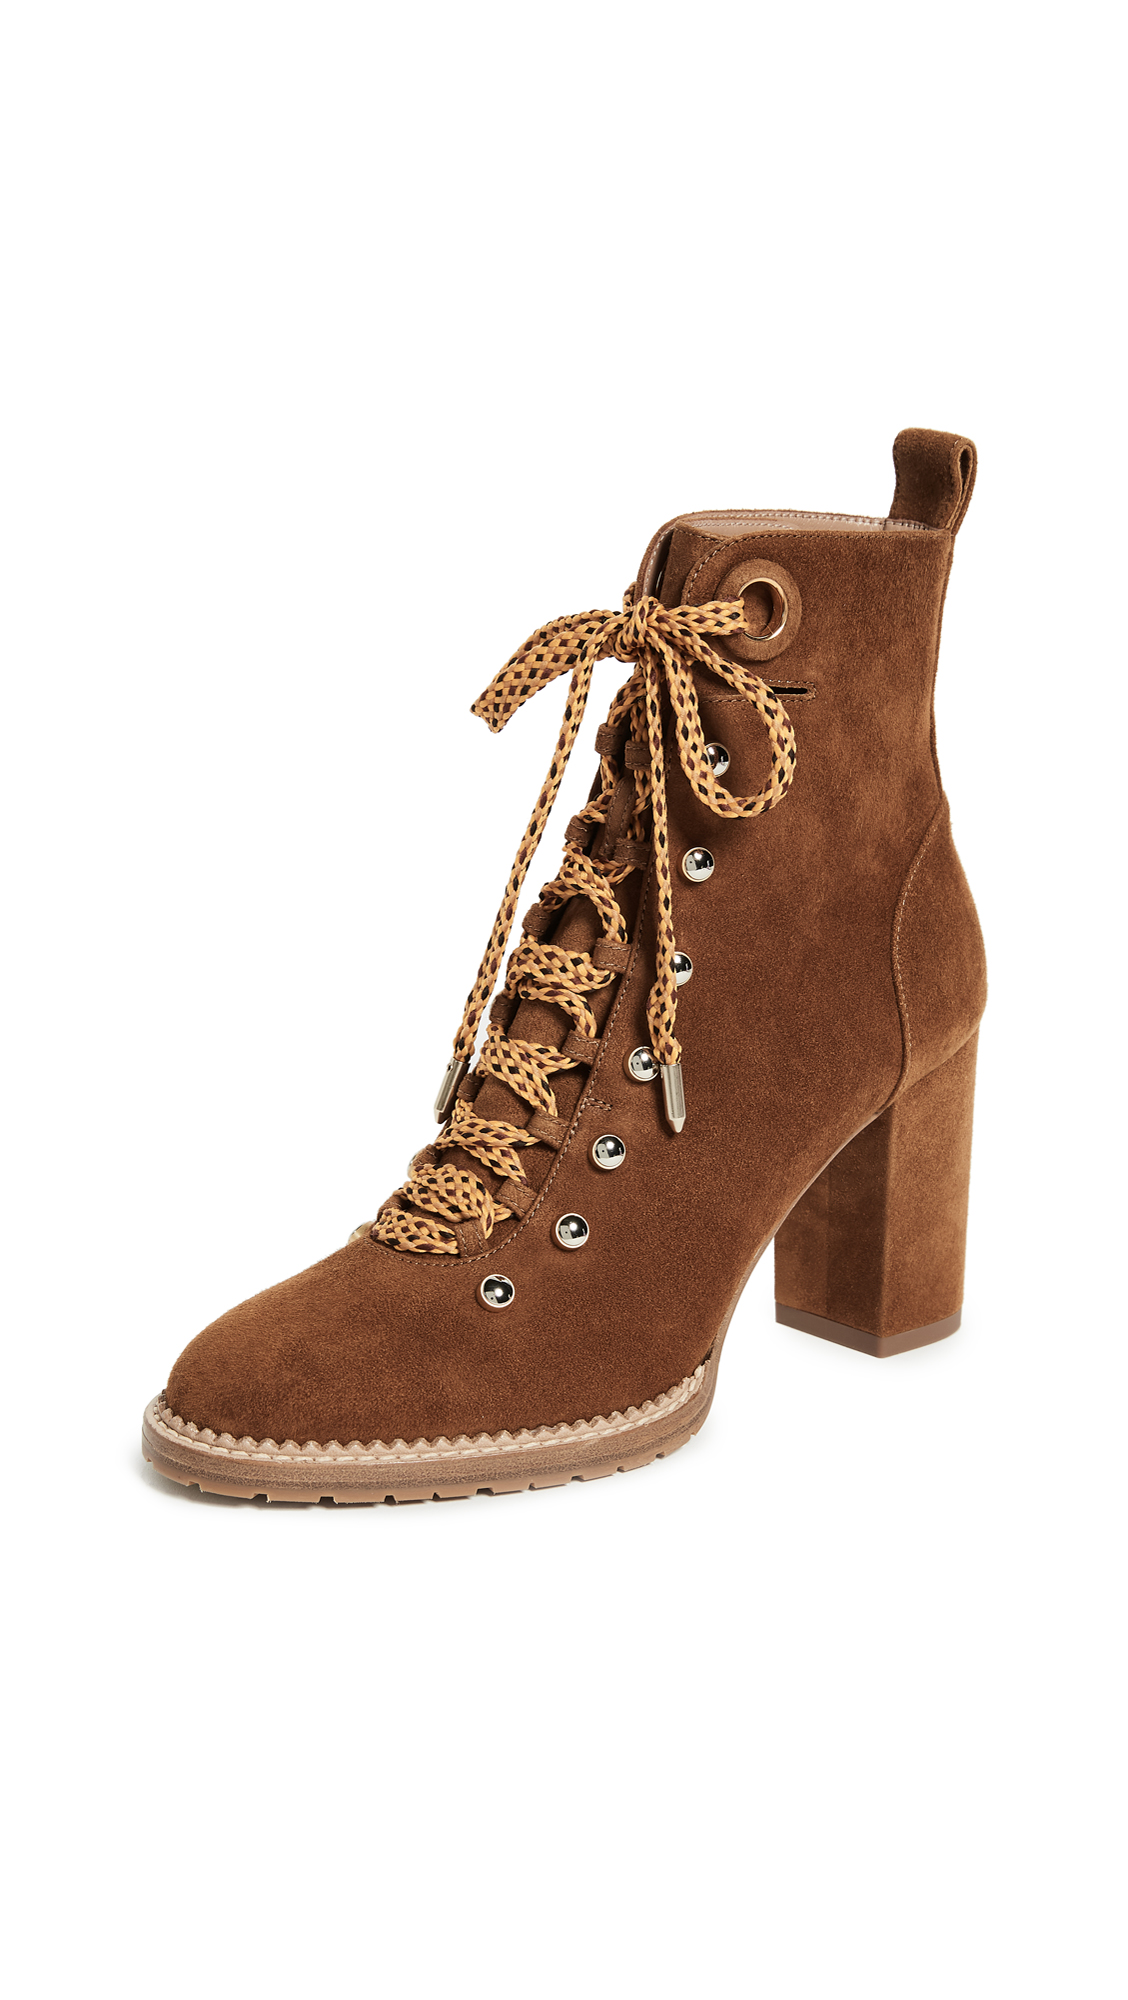 Aquazzura Hiker 90 Booties - Cognac